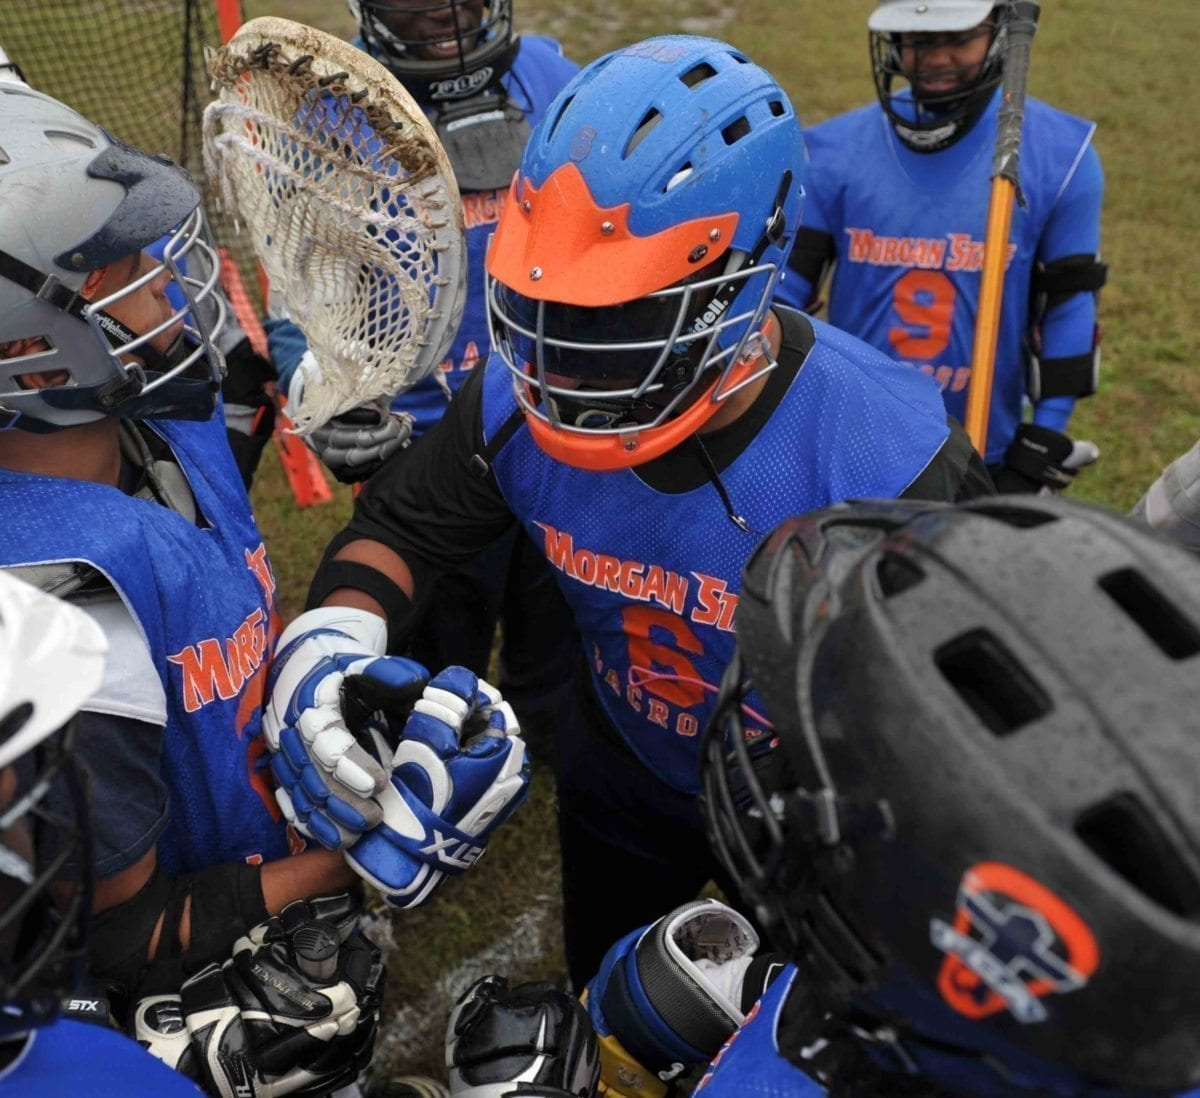 Morgan State Lacrosse team 2011 2012 Ten Bears